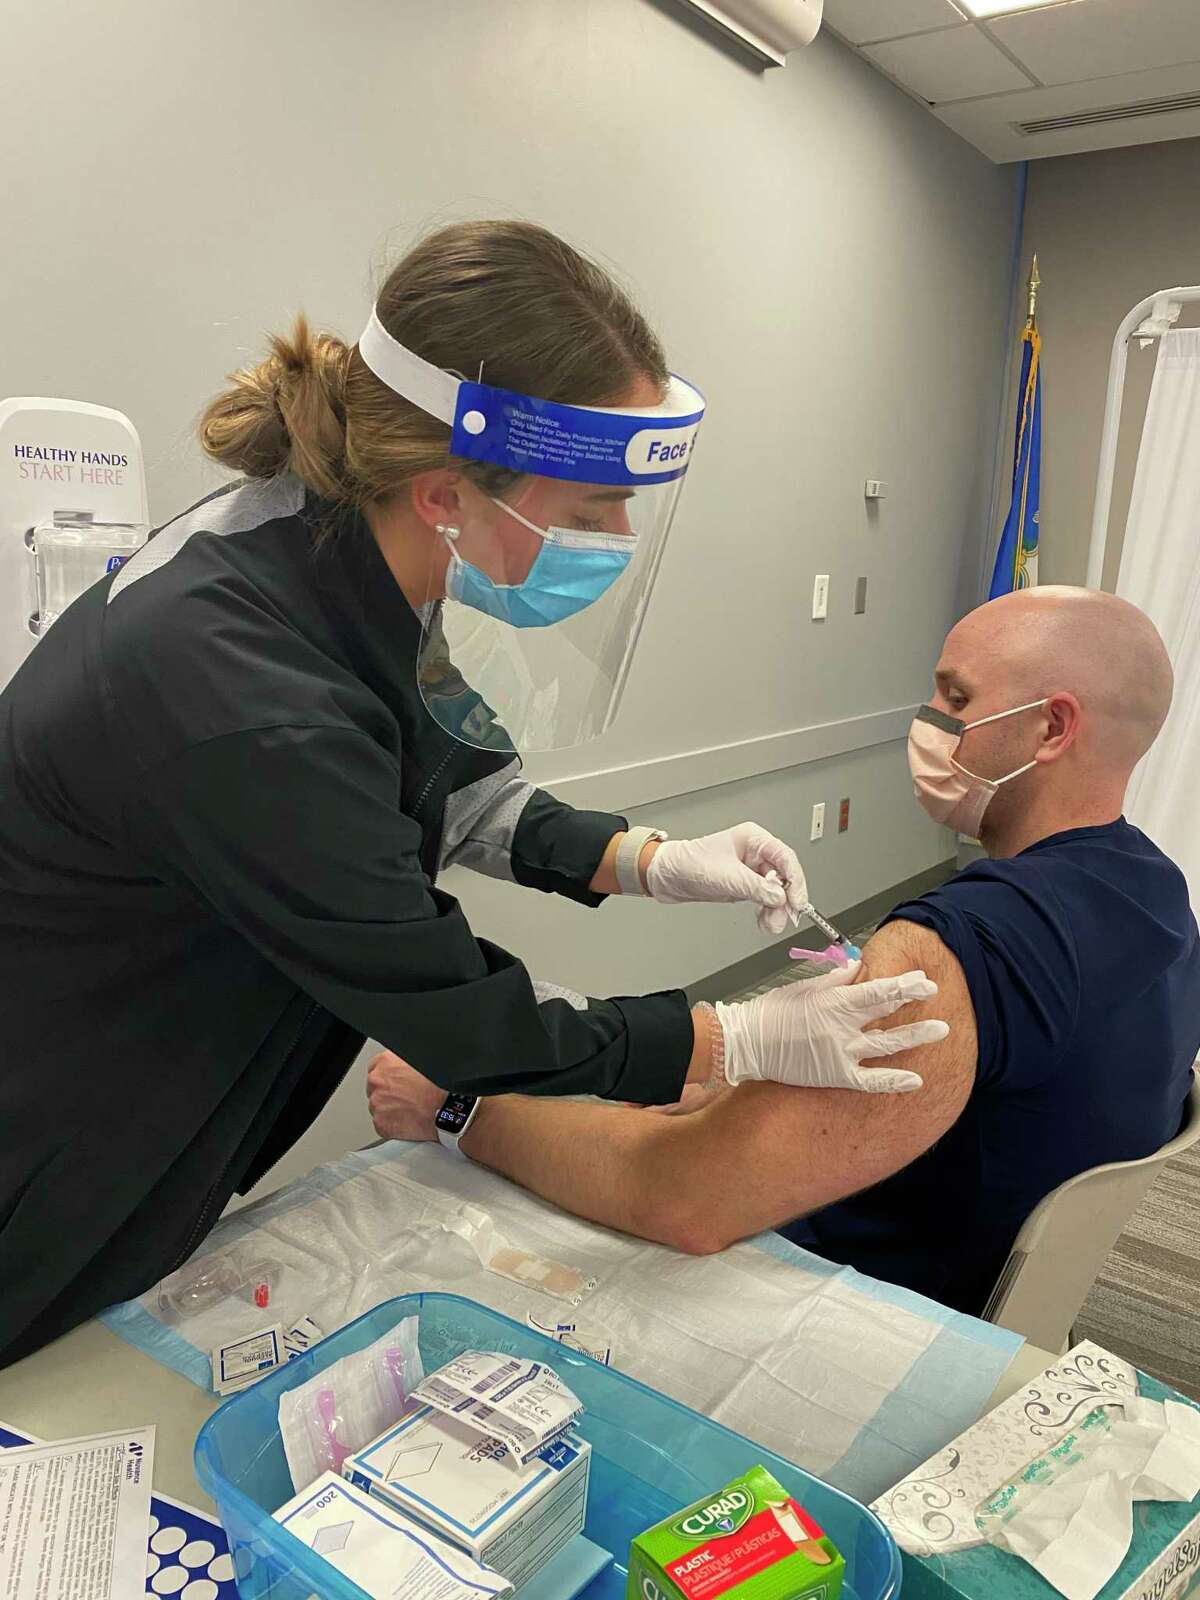 A Fairfield University nursing student vaccinating a healthcare worker.